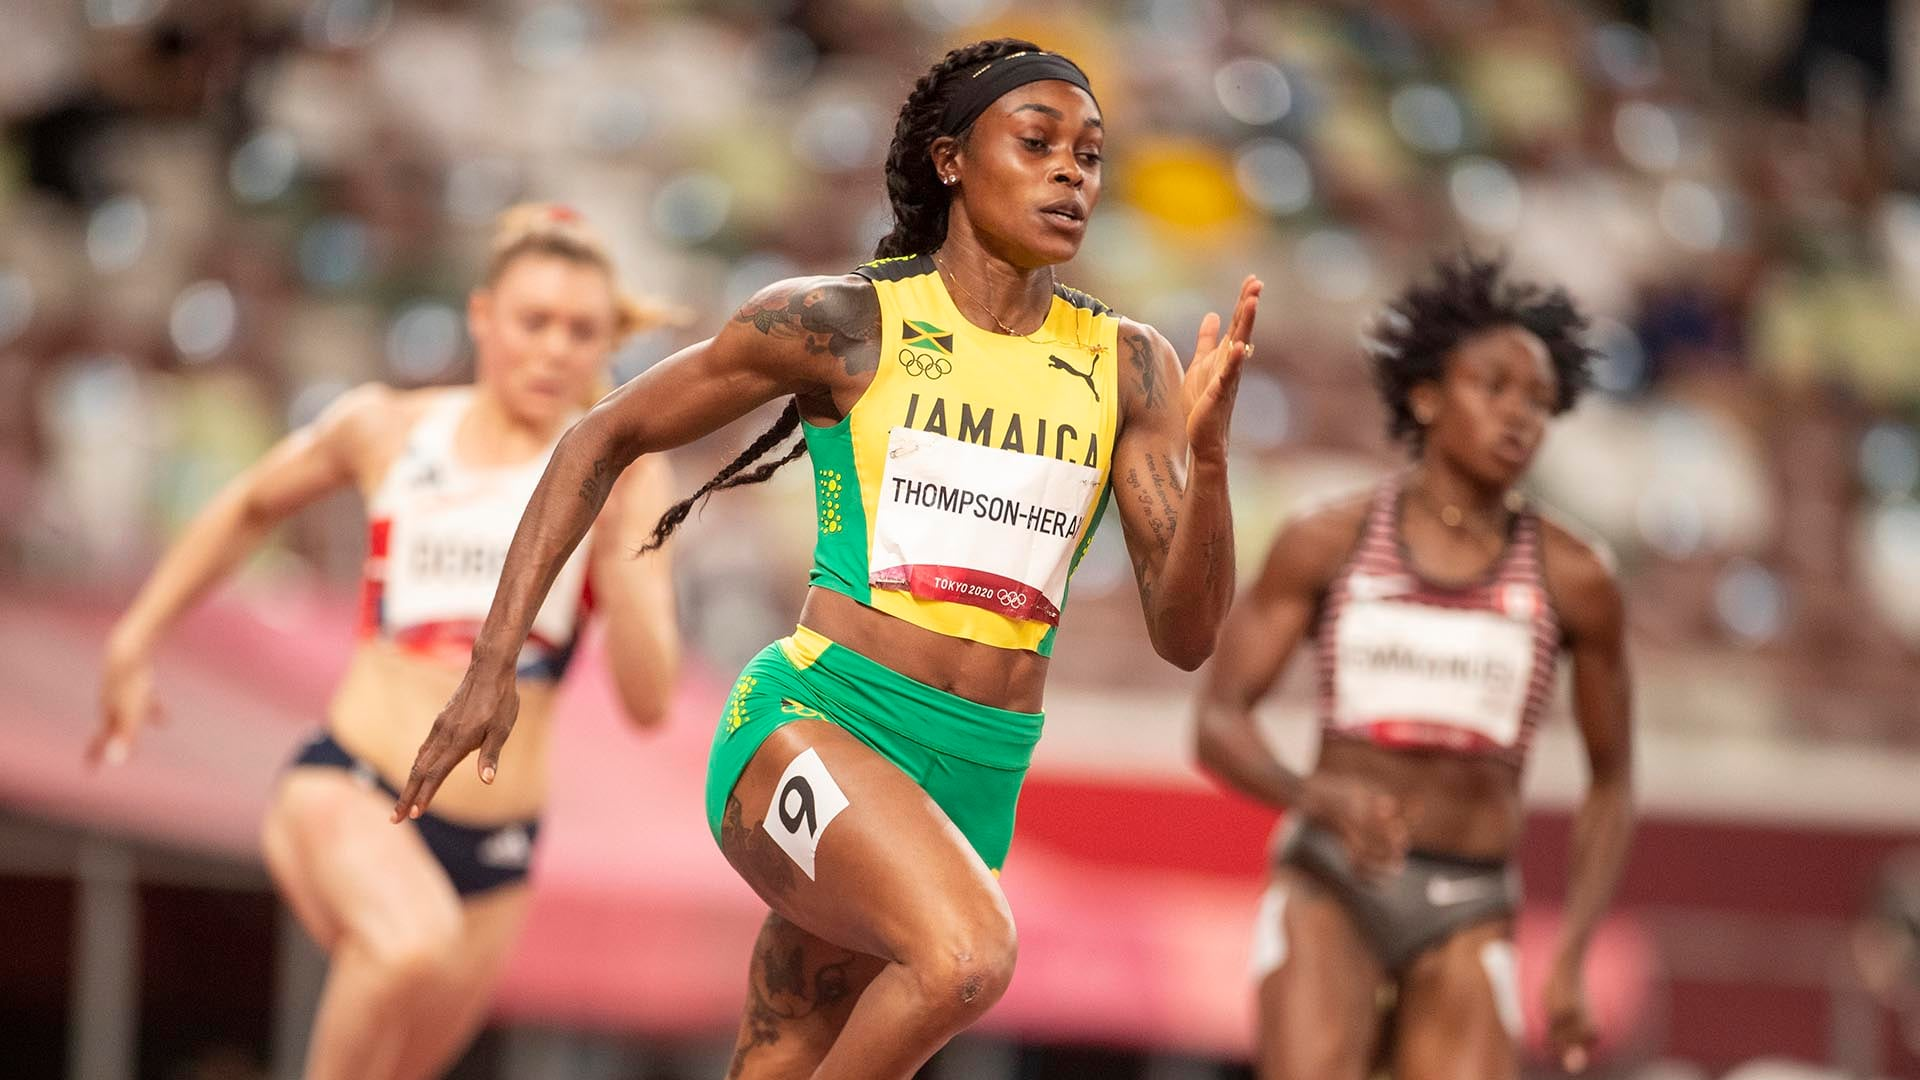 Image for Jamaican sprint duo look strong in 200m semifinals